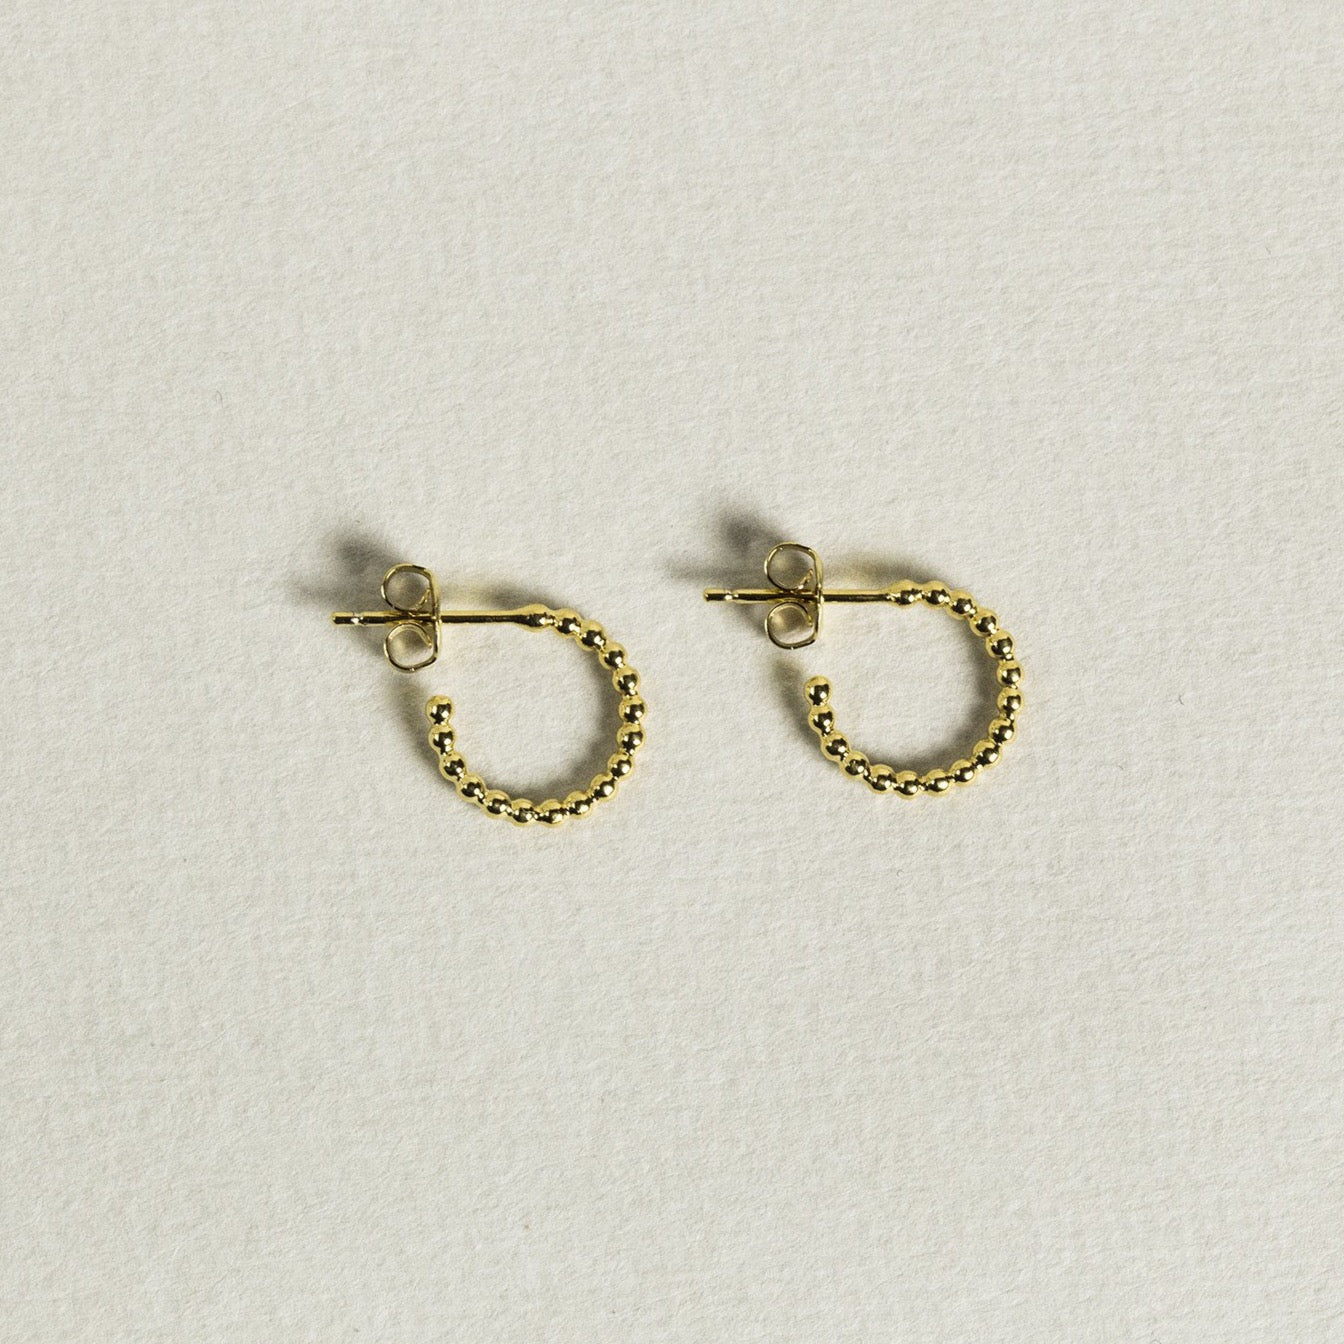 adorable tiny beaded hoops - smallest in the whole beaded collection!